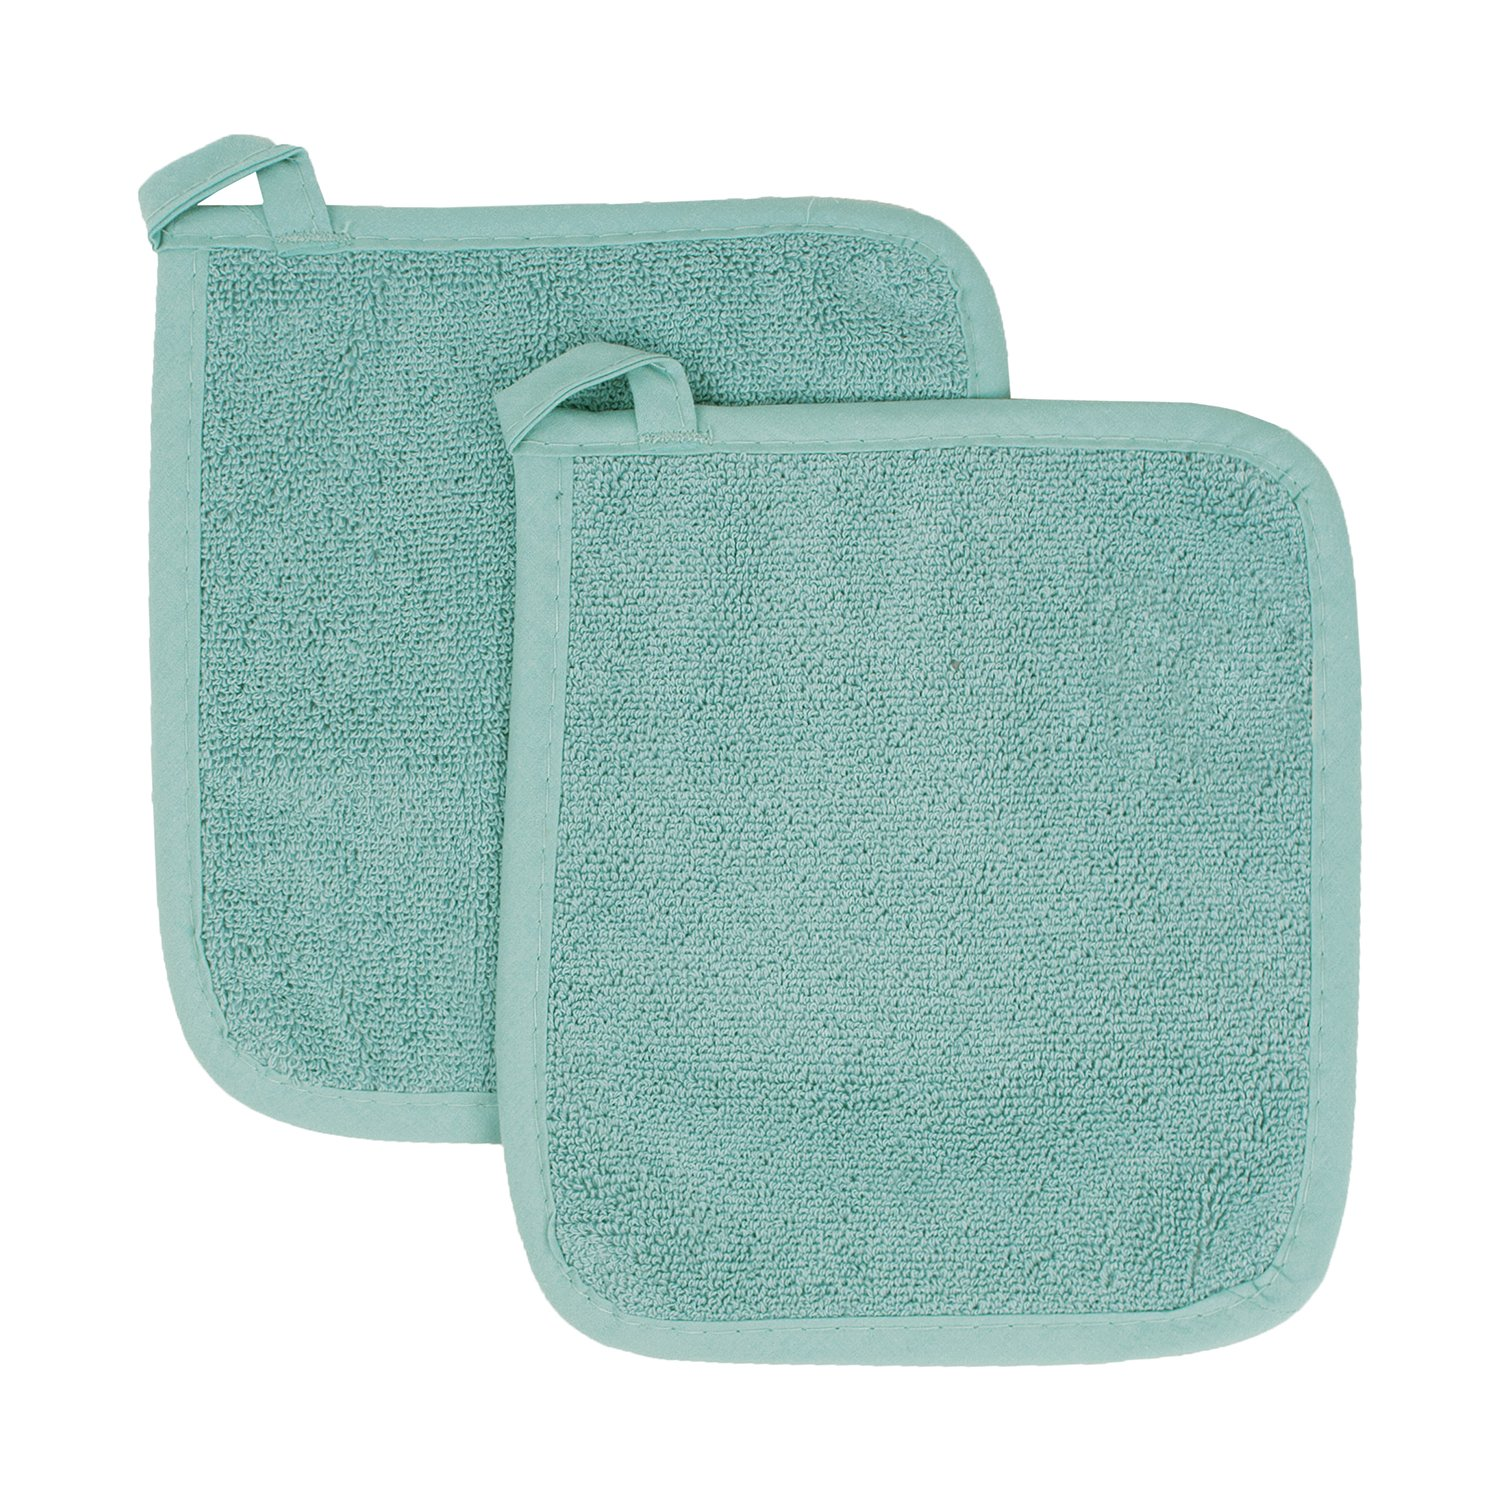 Ritz Royale Collection 100% Cotton Terry Cloth Pot Holder Set, Kitchen Hot Pad, 2-Pack, Dew